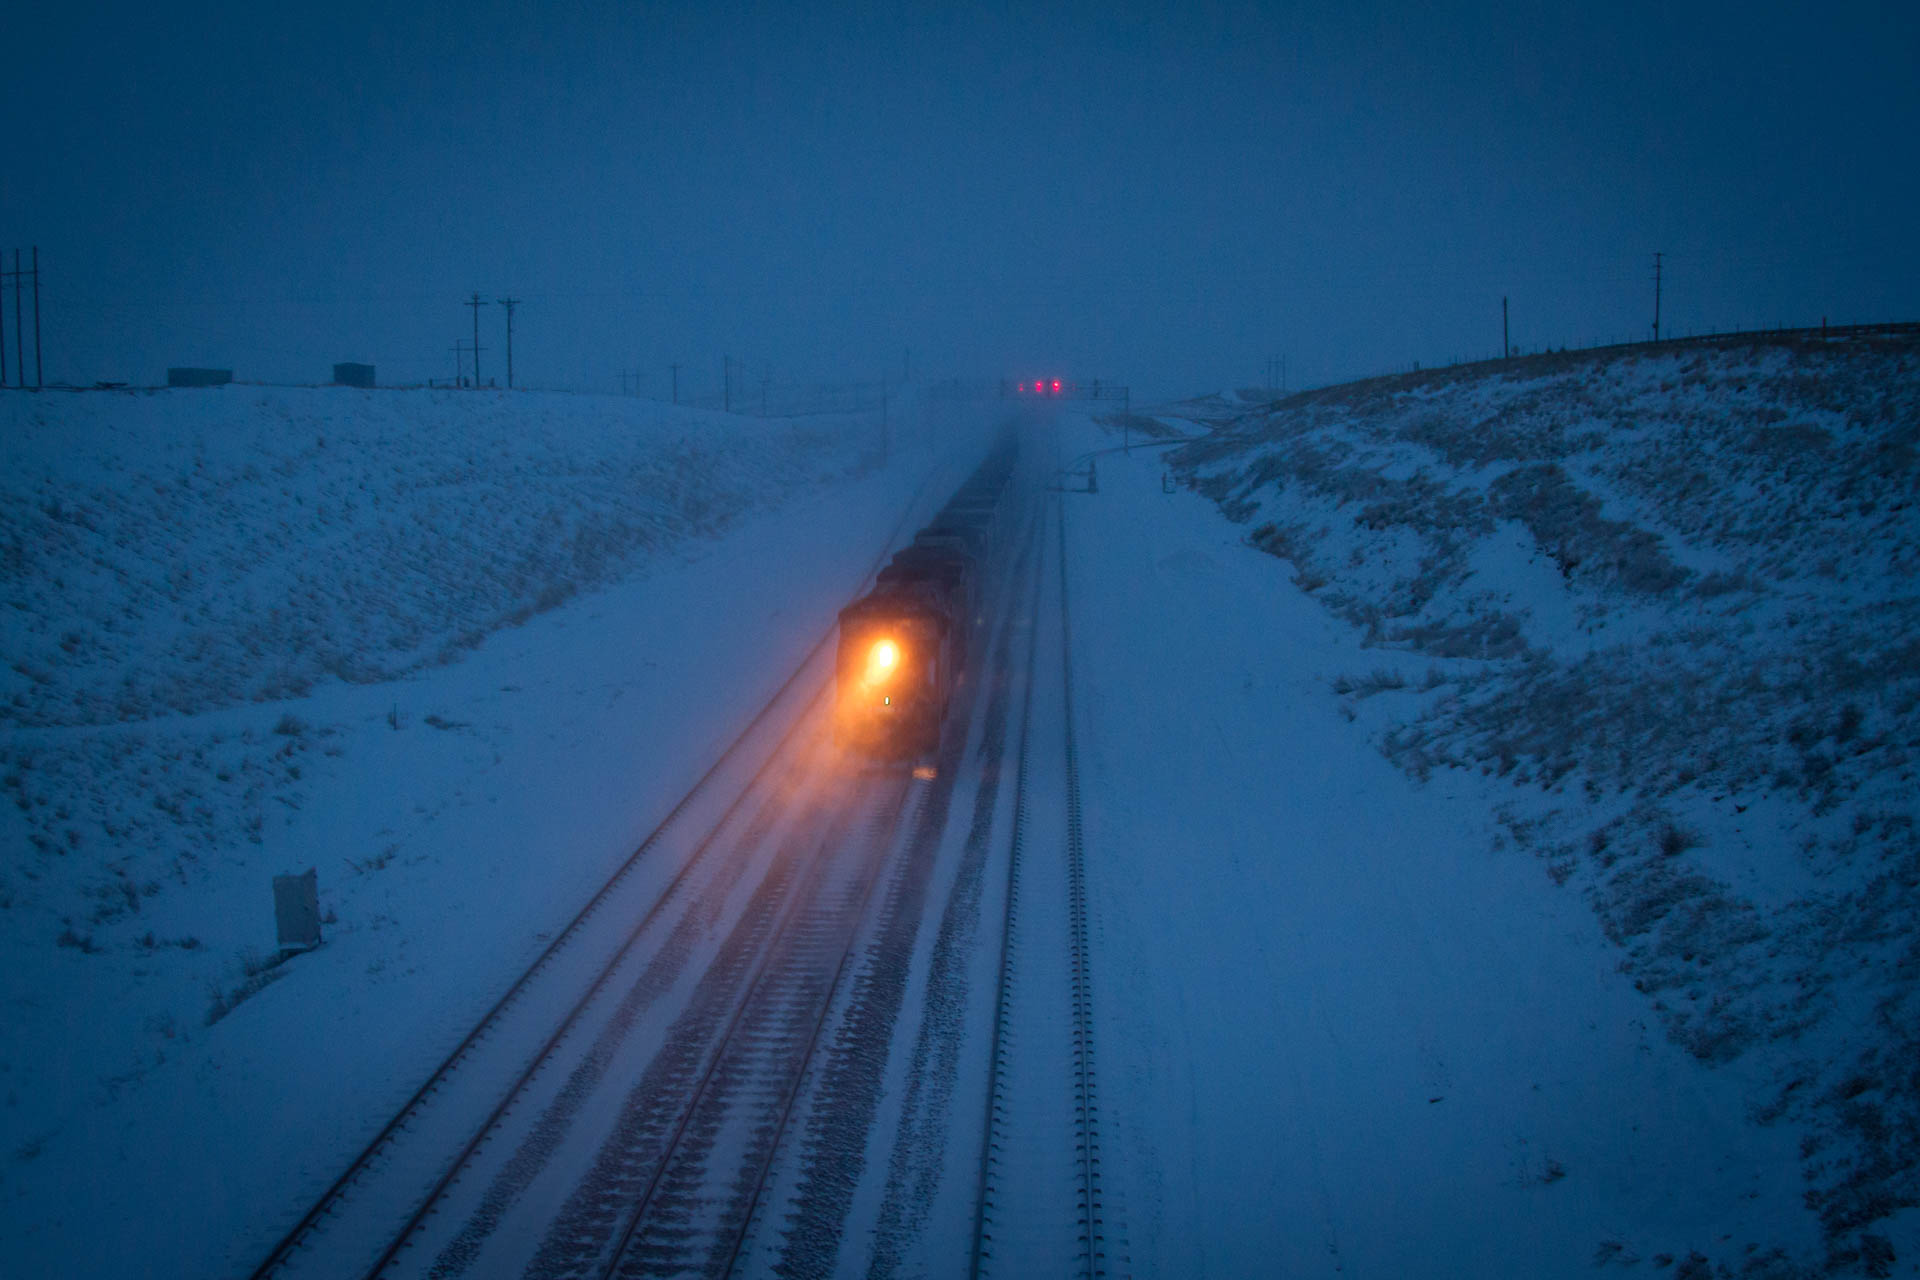 bnsf_coal_train_early_dawn_snowy_prb_eb